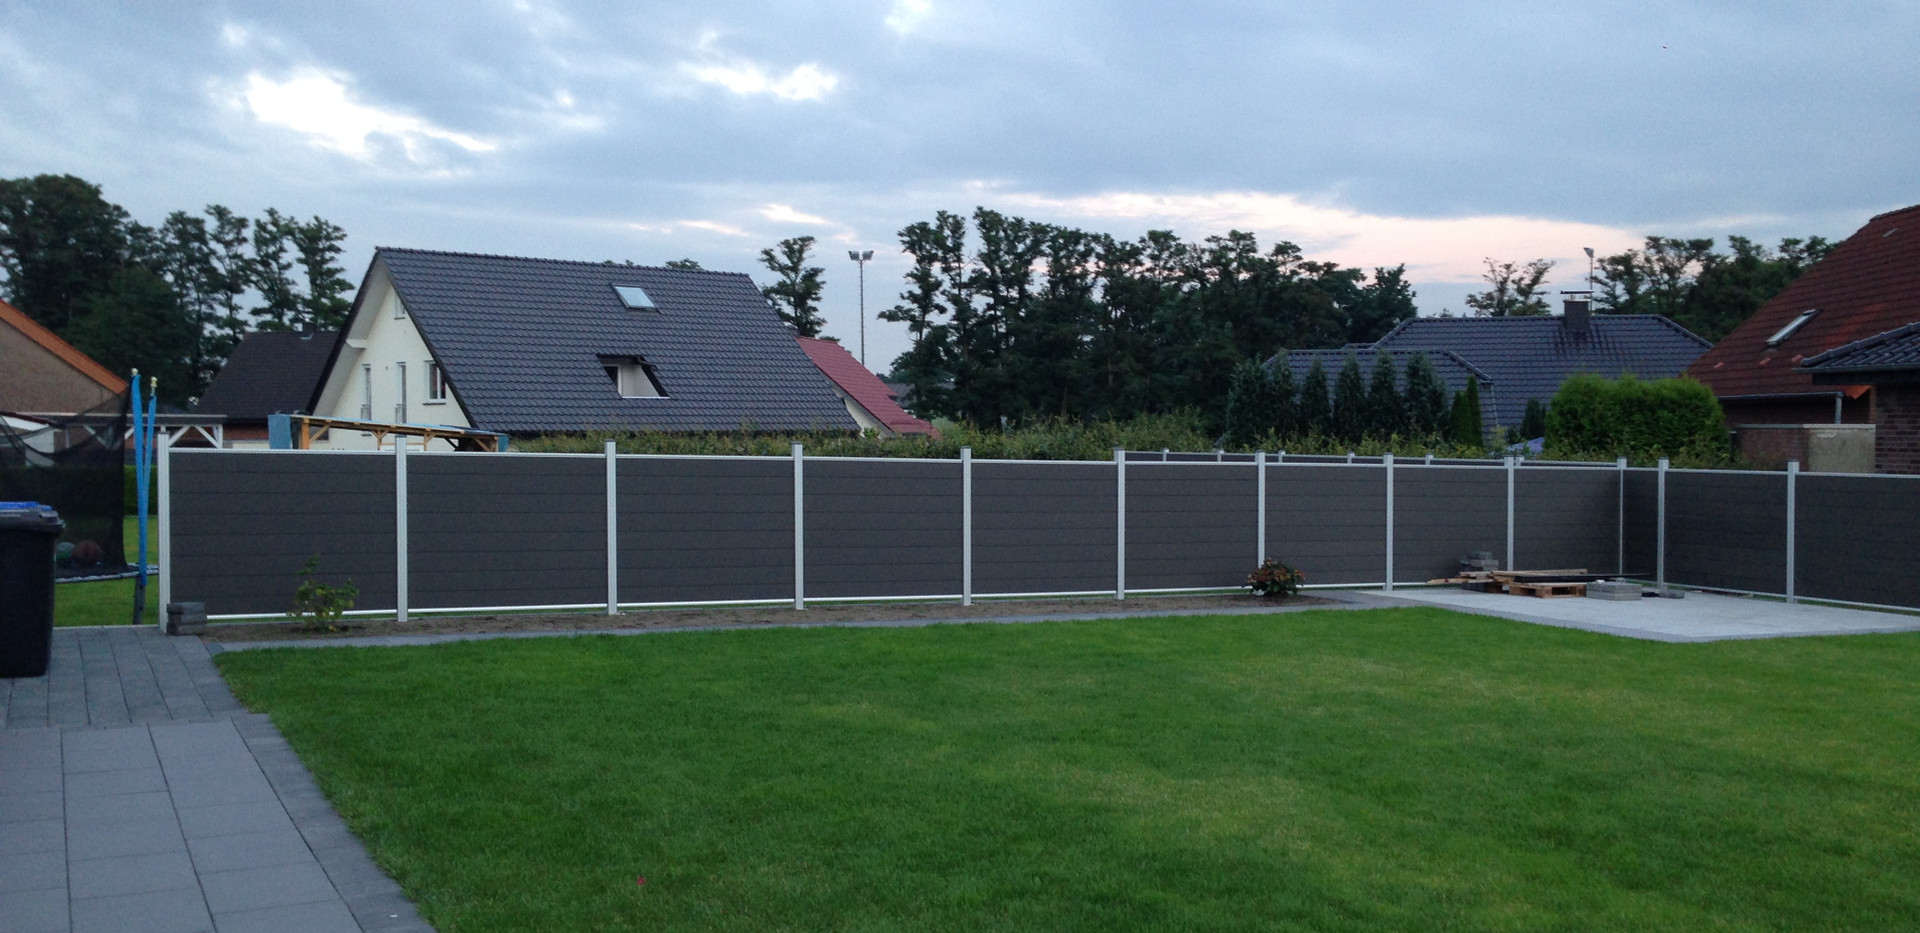 Tranditional fence project pictures (1).